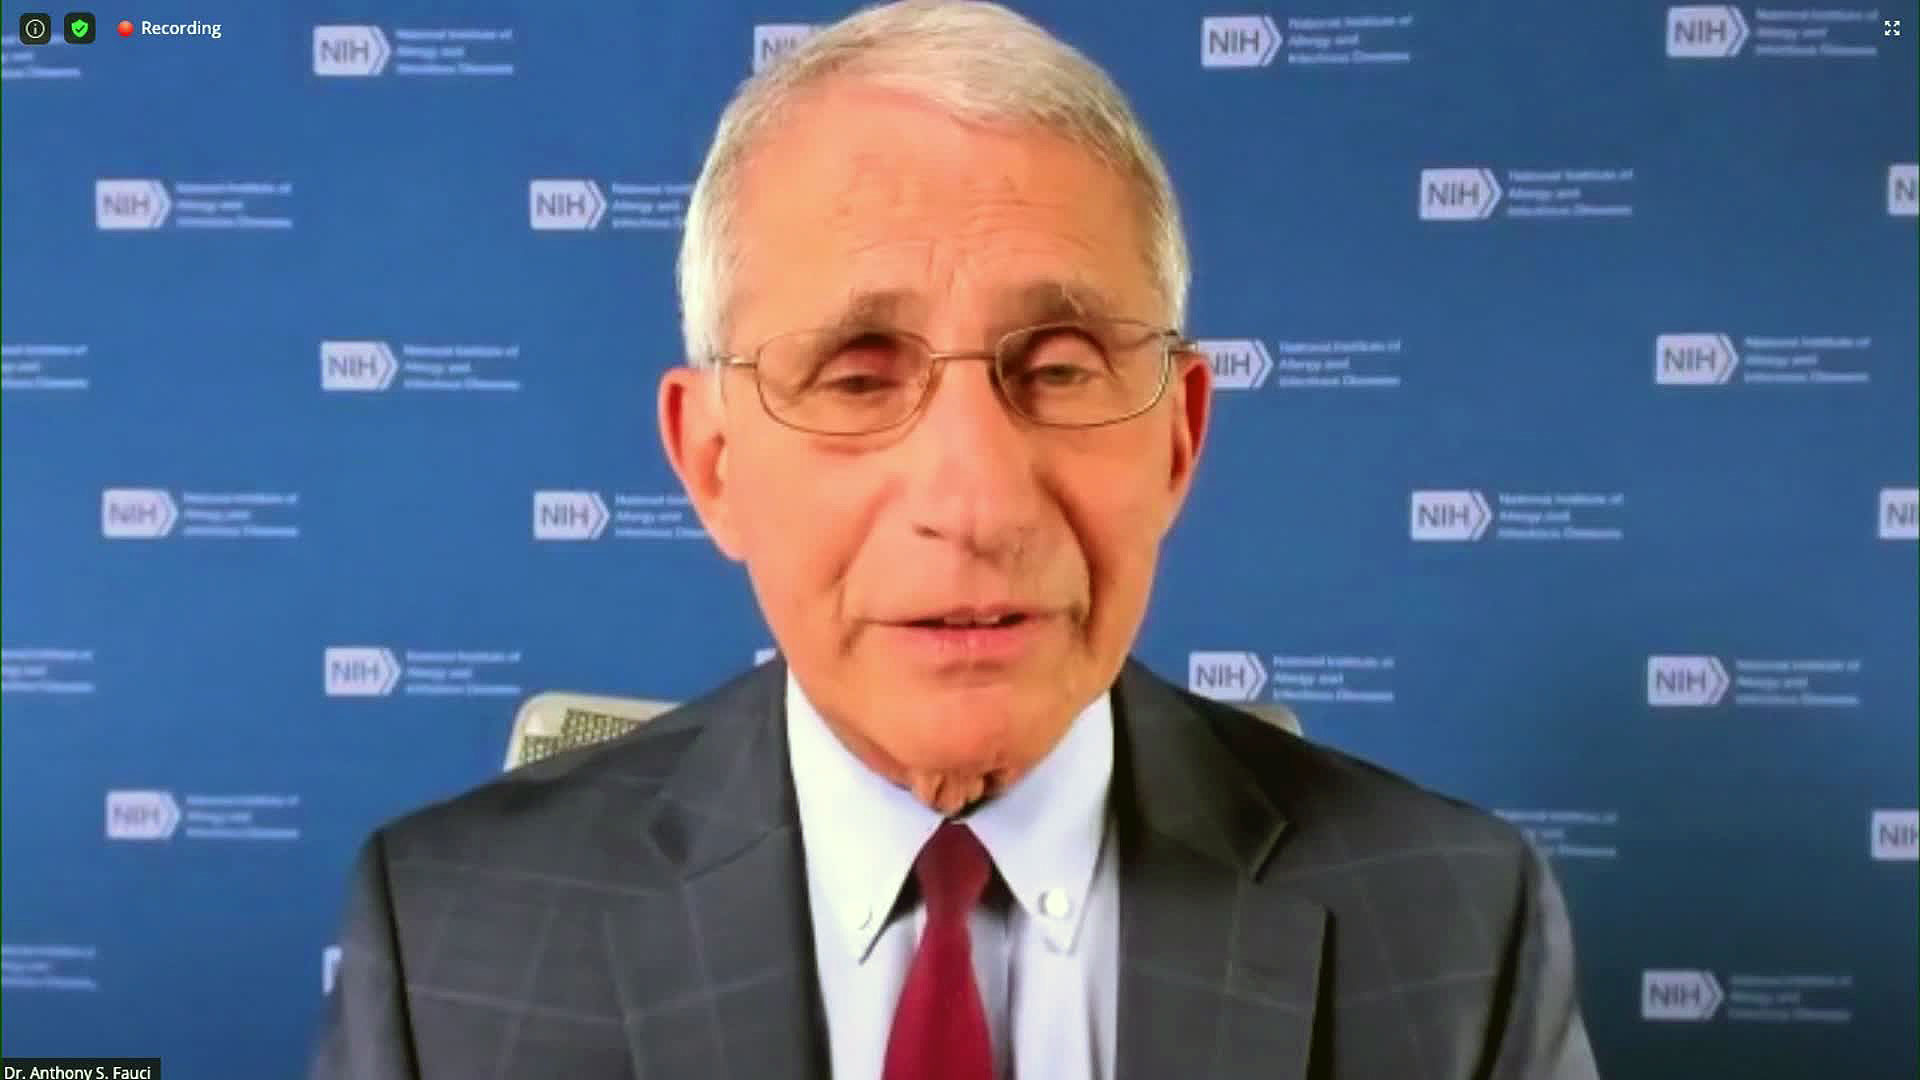 Dr. Anthony Fauci speaks remotely during the Research! America 2020 Summit.